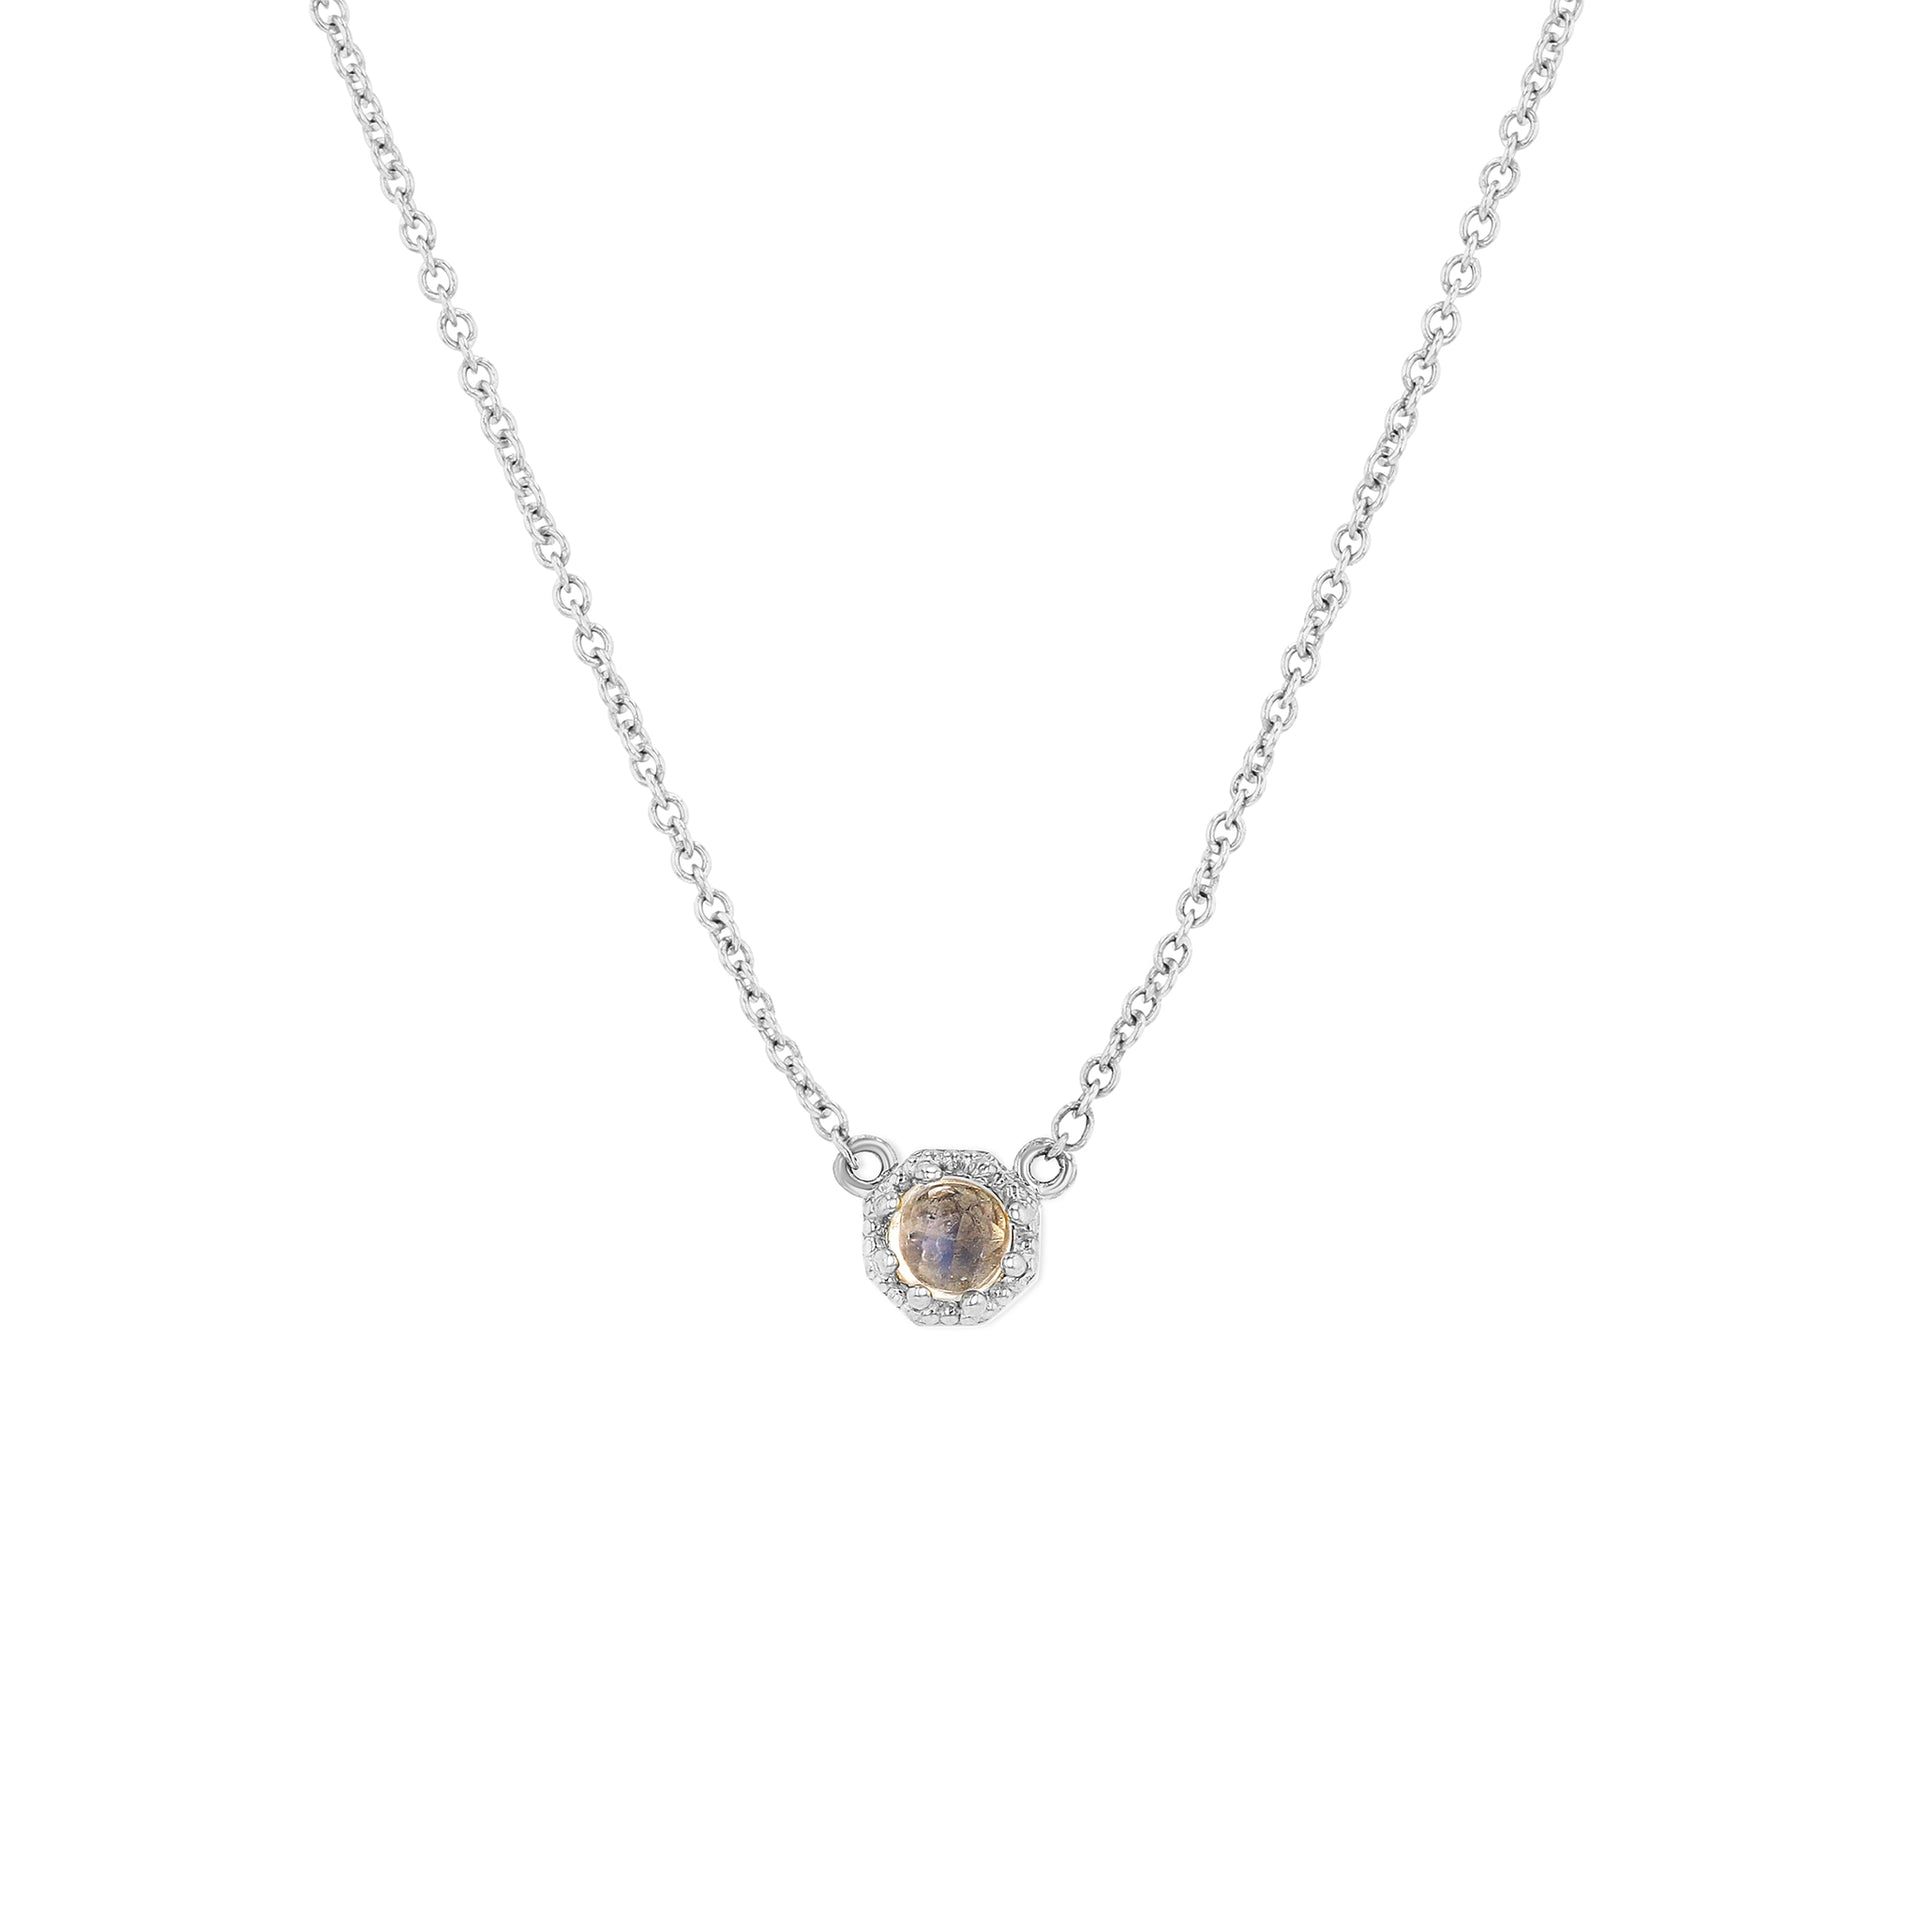 Petite Crown Bezel Moonstone Necklace - RTS